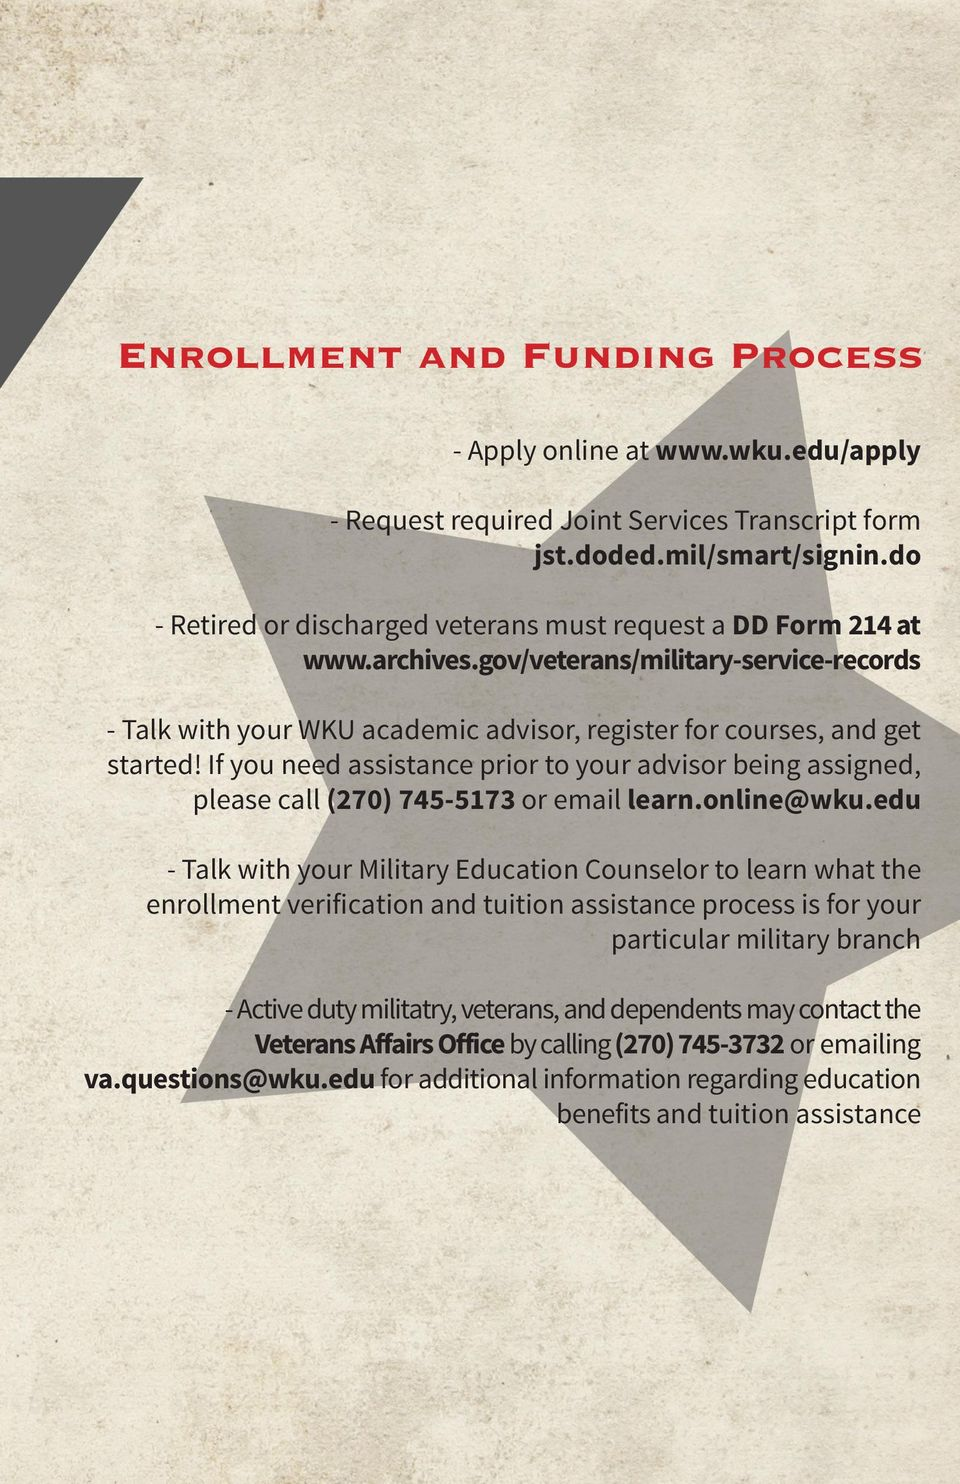 If you need assistance prior to your advisor being assigned, please call (270) 745-5173 or email learn.online@wku.